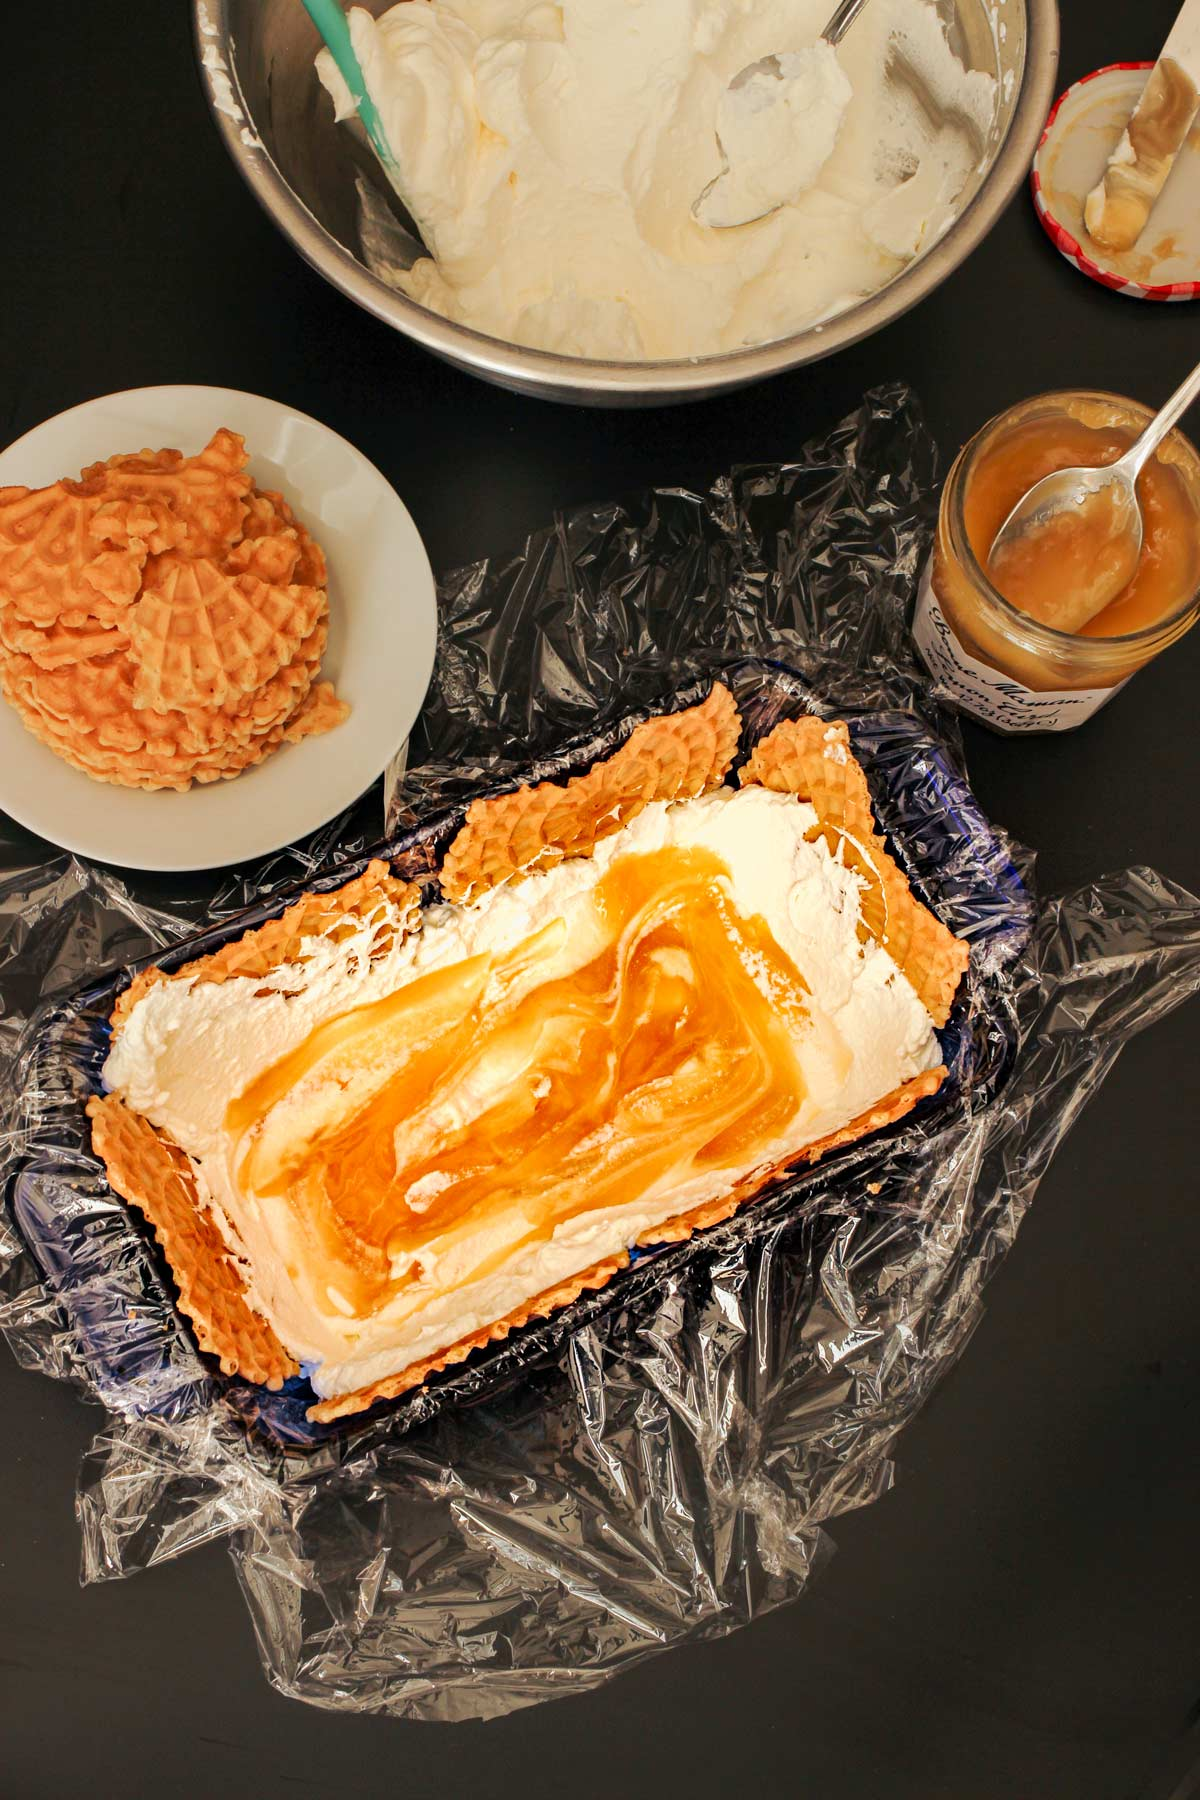 curd spread over the layer of whipped cream in loaf pan.